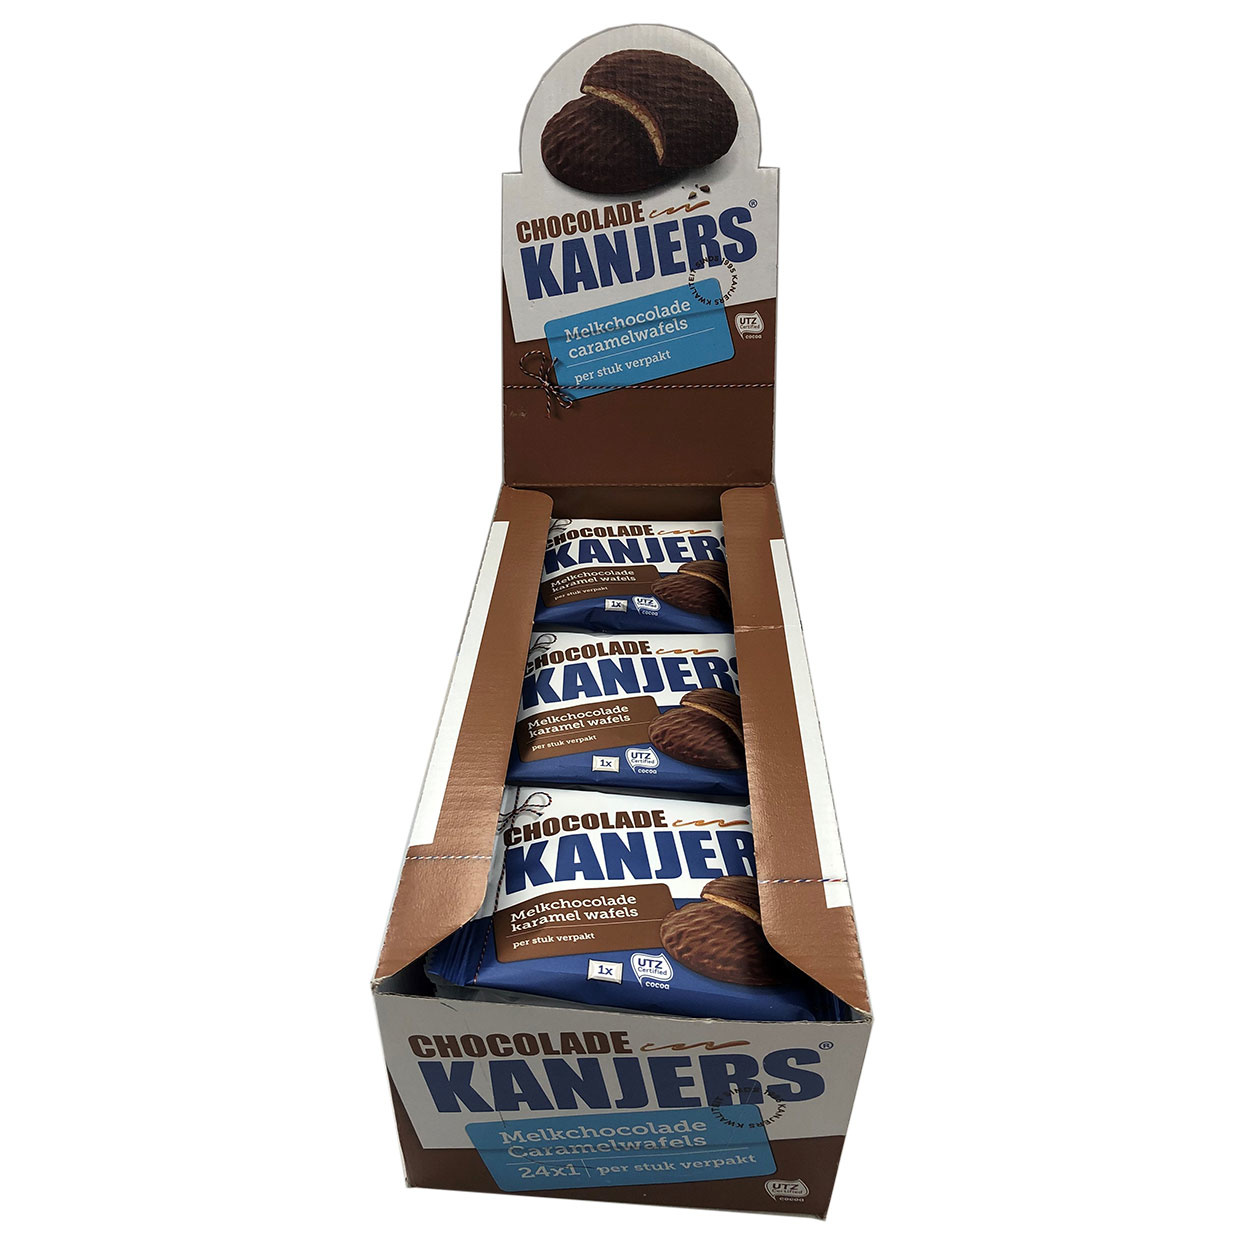 Kanjers kanjers Chocolate and original display deal